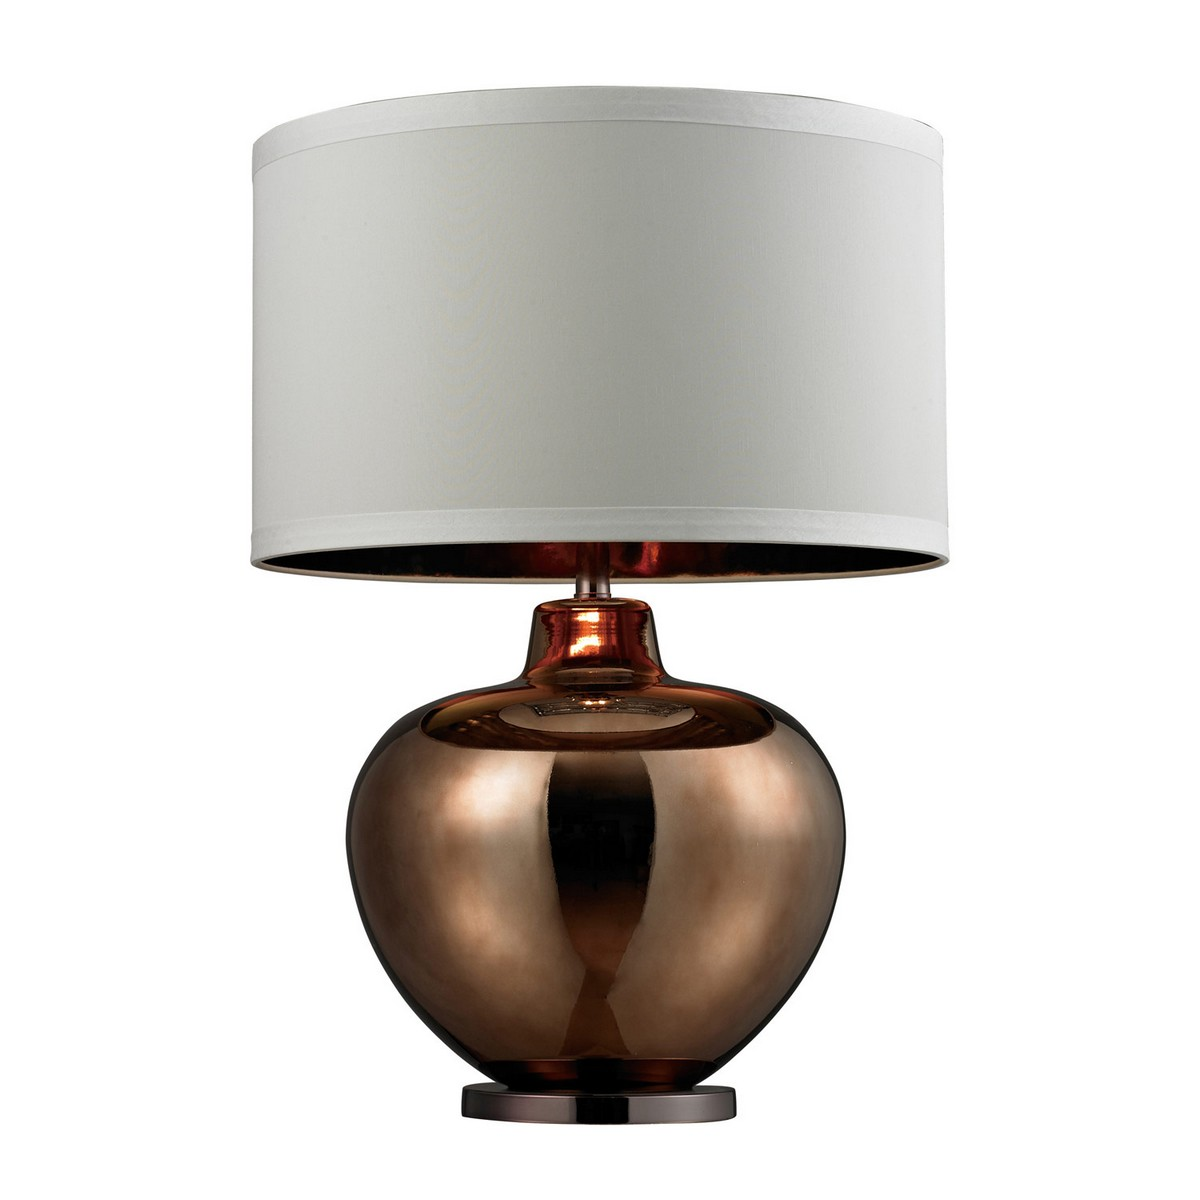 Elk Lighting D273 Table Lamp - Bronze Plated Glass with Coffee Plated Base